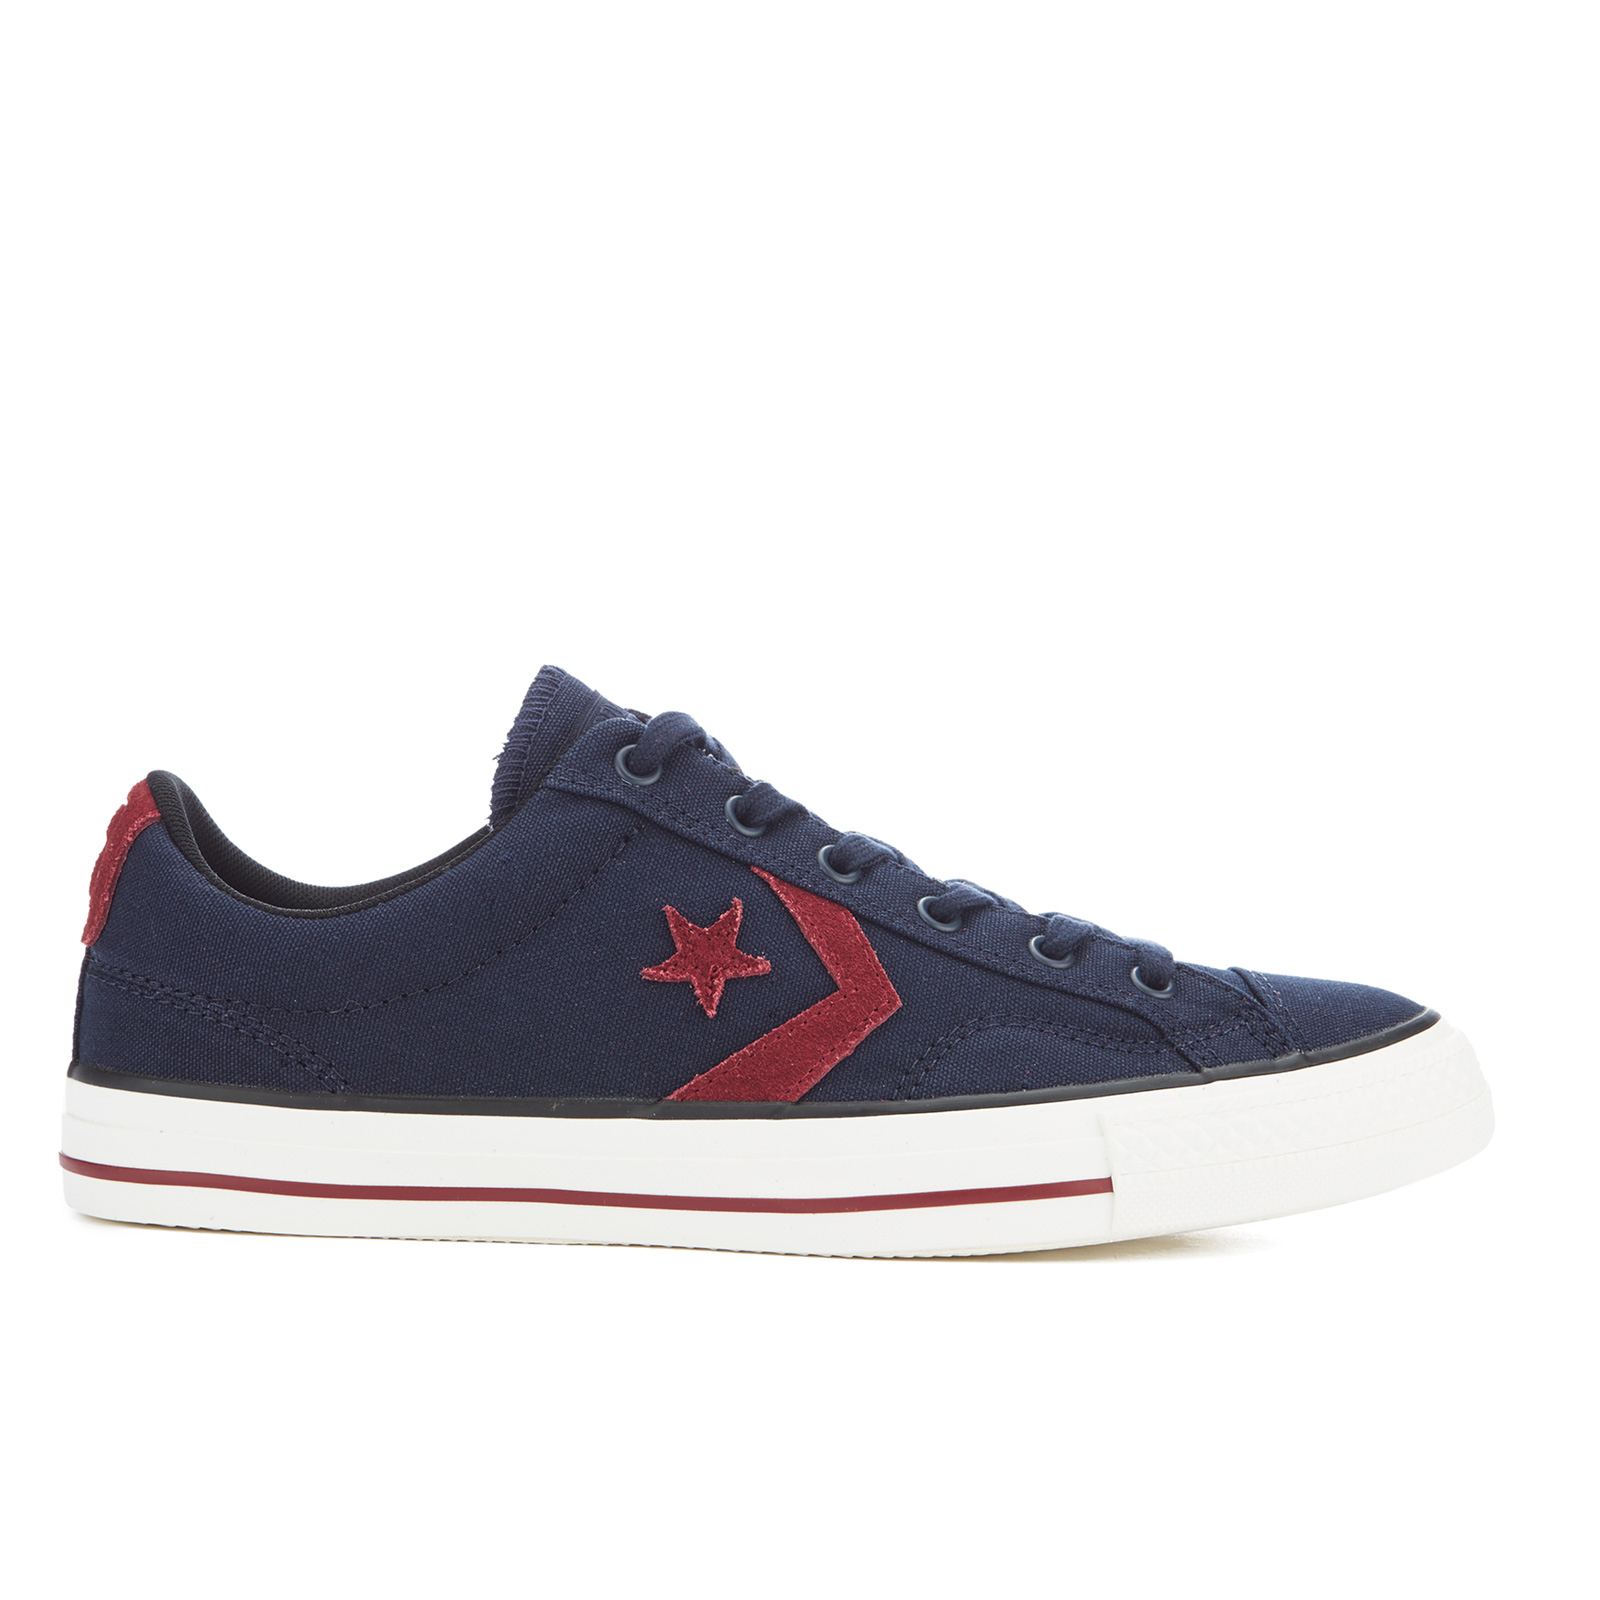 Converse CONS Men's Star Player Canvas Ox Trainers ObsidianRed BlockBlack